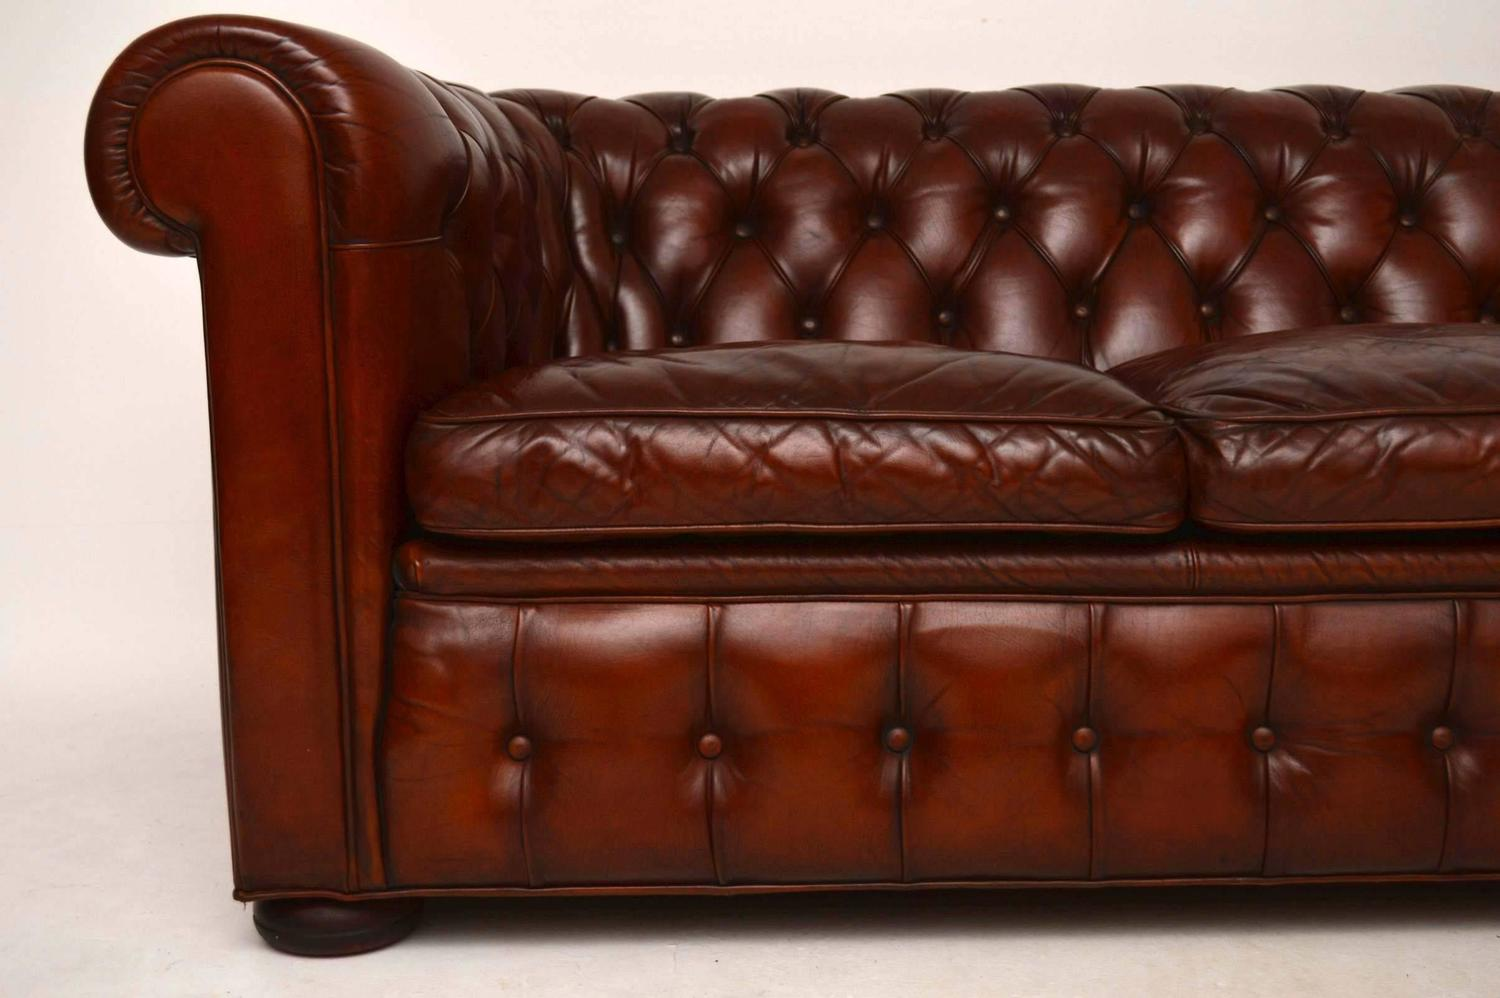 Antique leather three seat chesterfield sofa for sale at 1stdibs Leather chesterfield loveseat